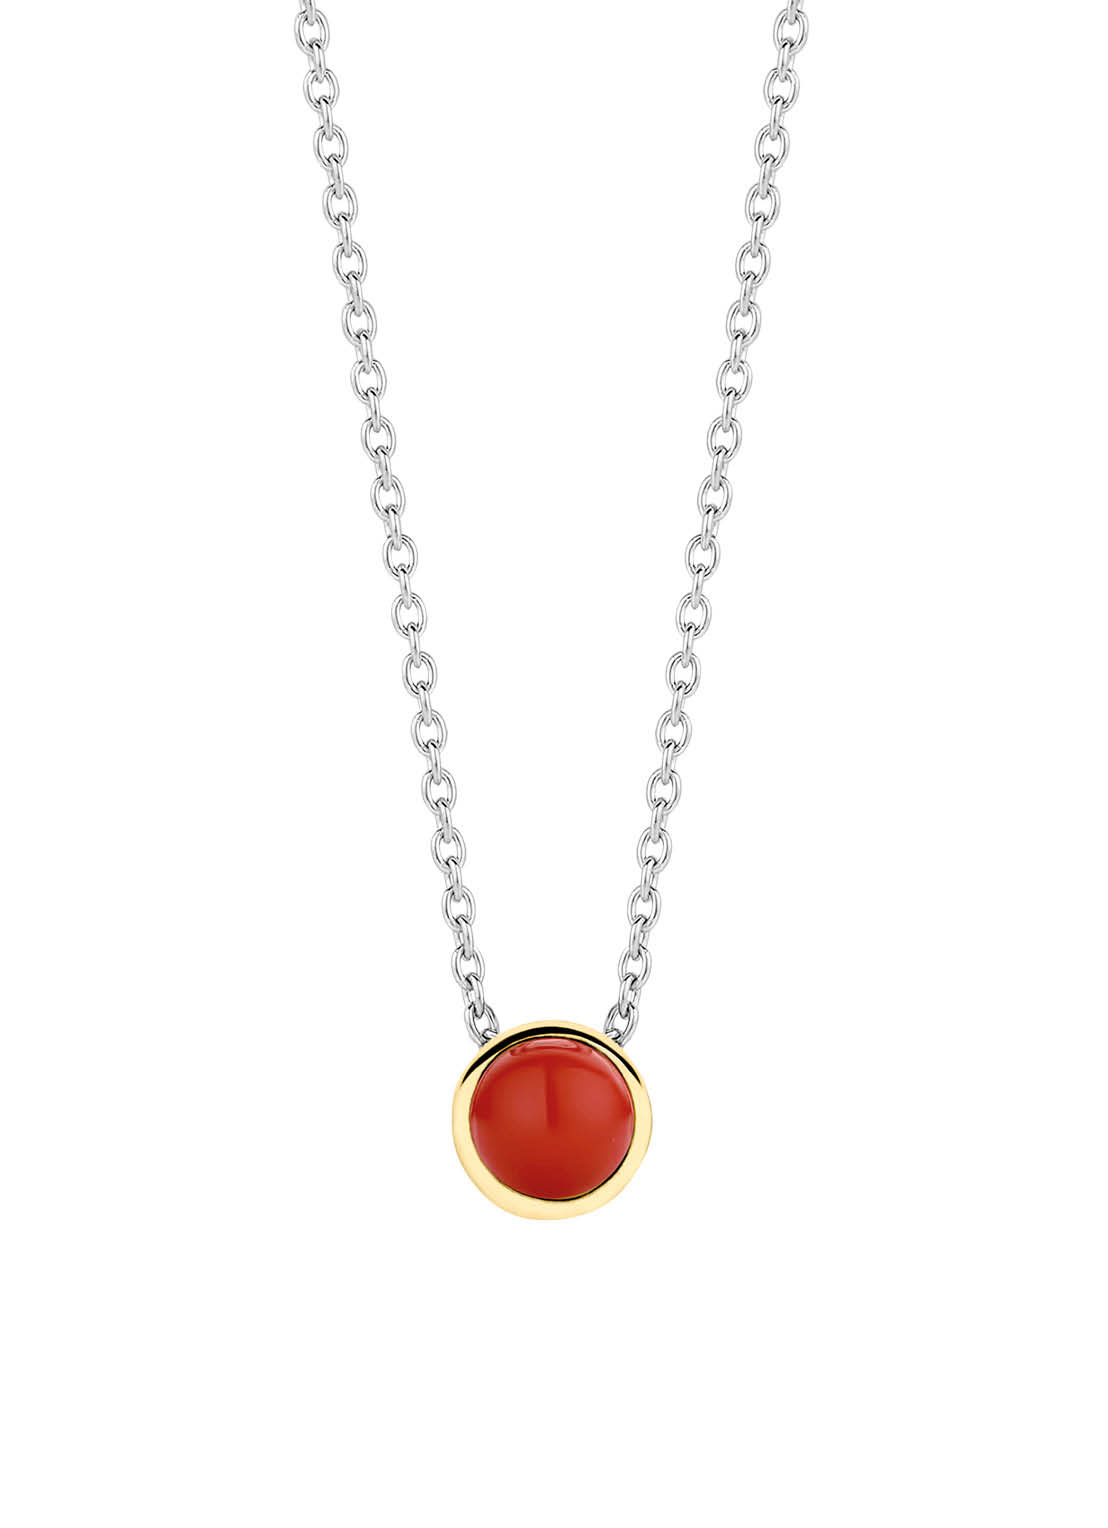 TI SENTO-Milano 3845CR Ketting Gilded zilver-goud-rood 42-47 cm